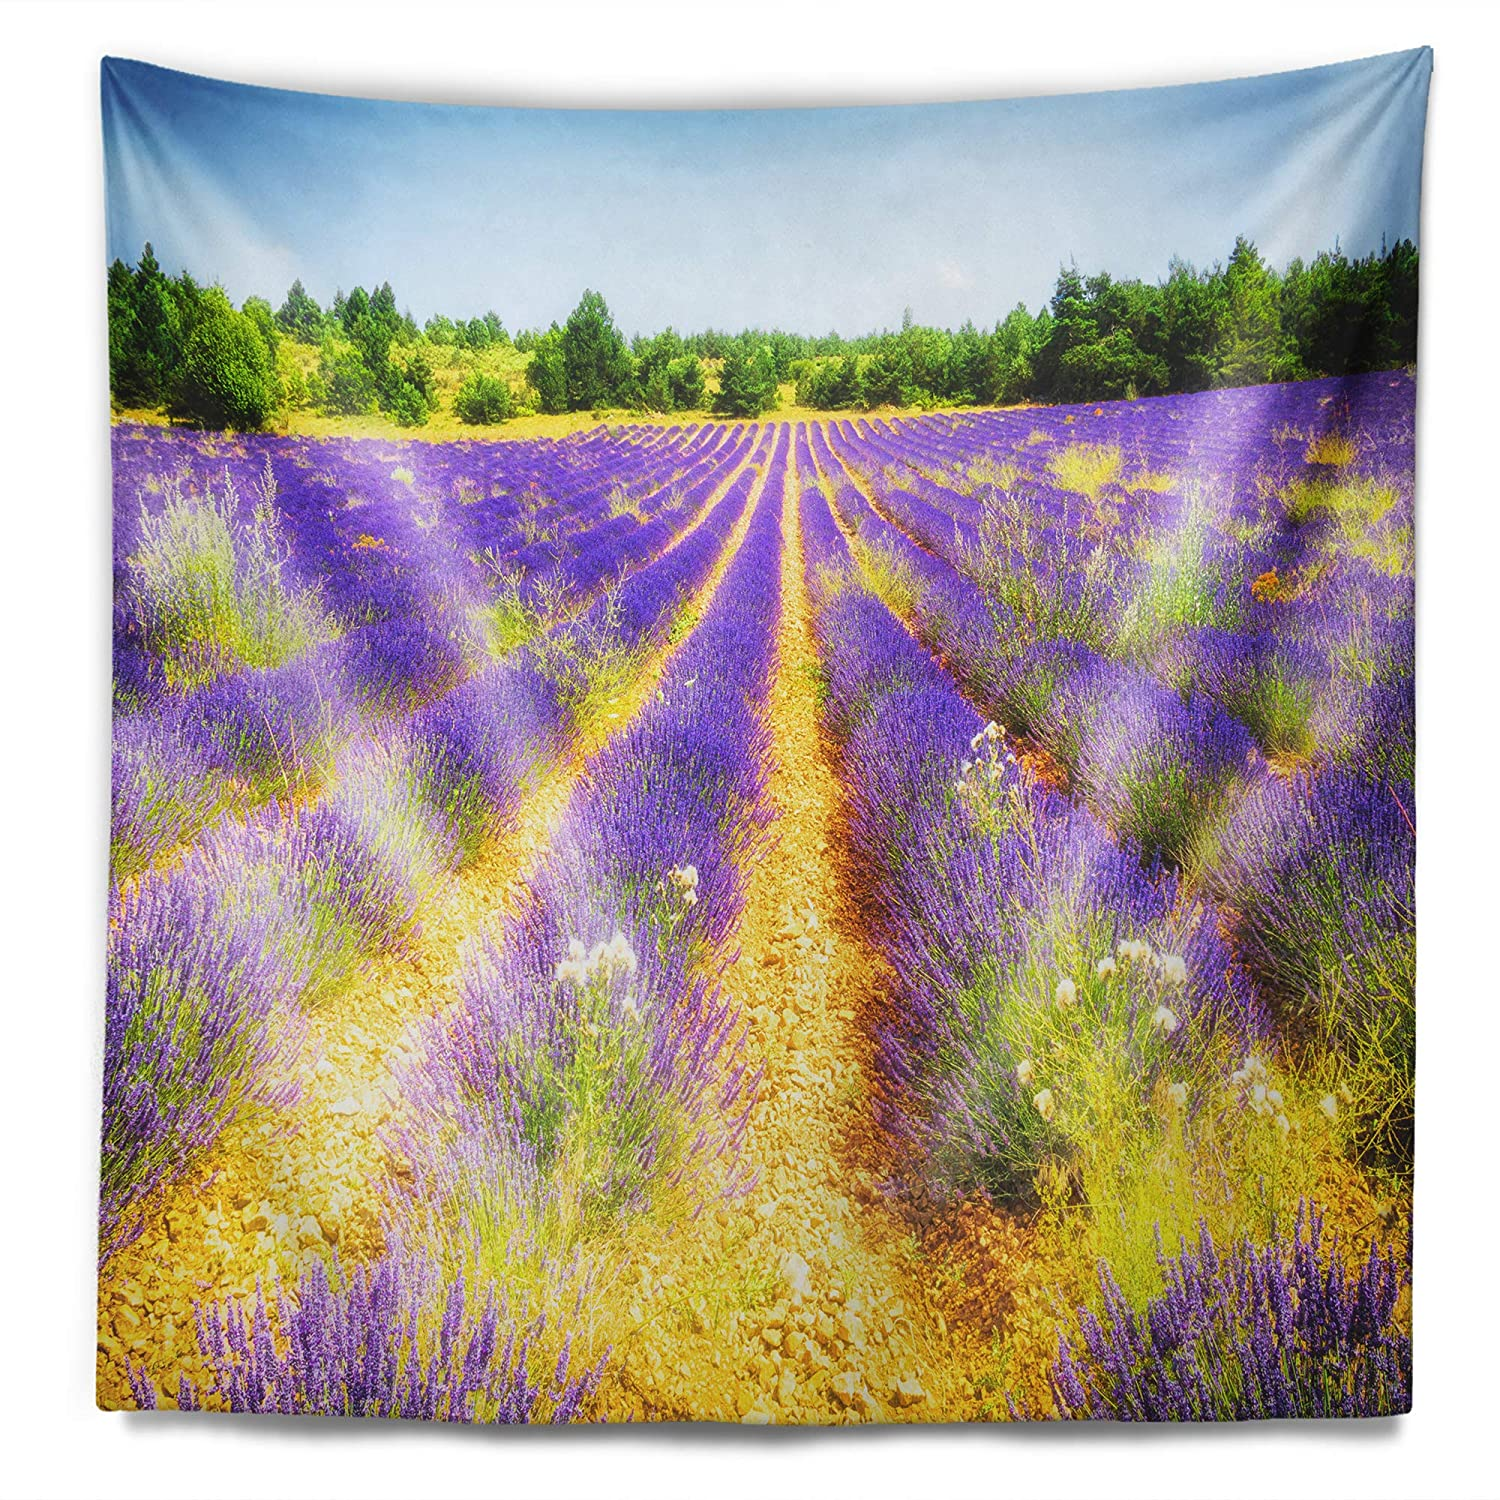 x 39 in Designart TAP13073-32-39  Fantastic Lavender Field of France Floral Blanket D/écor Art for Home and Office Wall Tapestry Medium Created On Lightweight Polyester Fabric 32 in